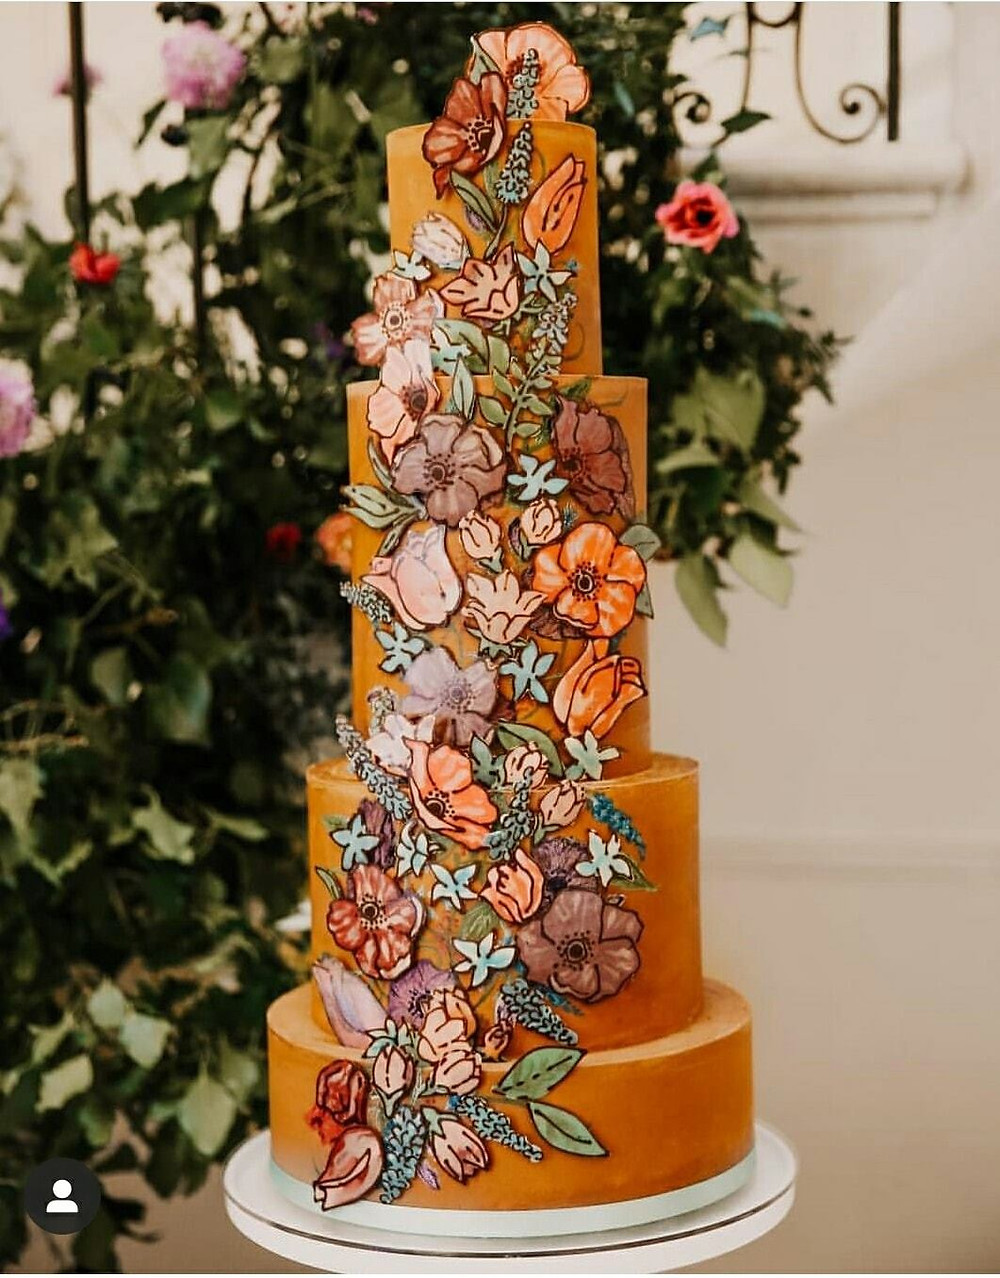 Tiered chocolated cake with chocolate painted flowers by Chocolate Utopia Oxfordshire